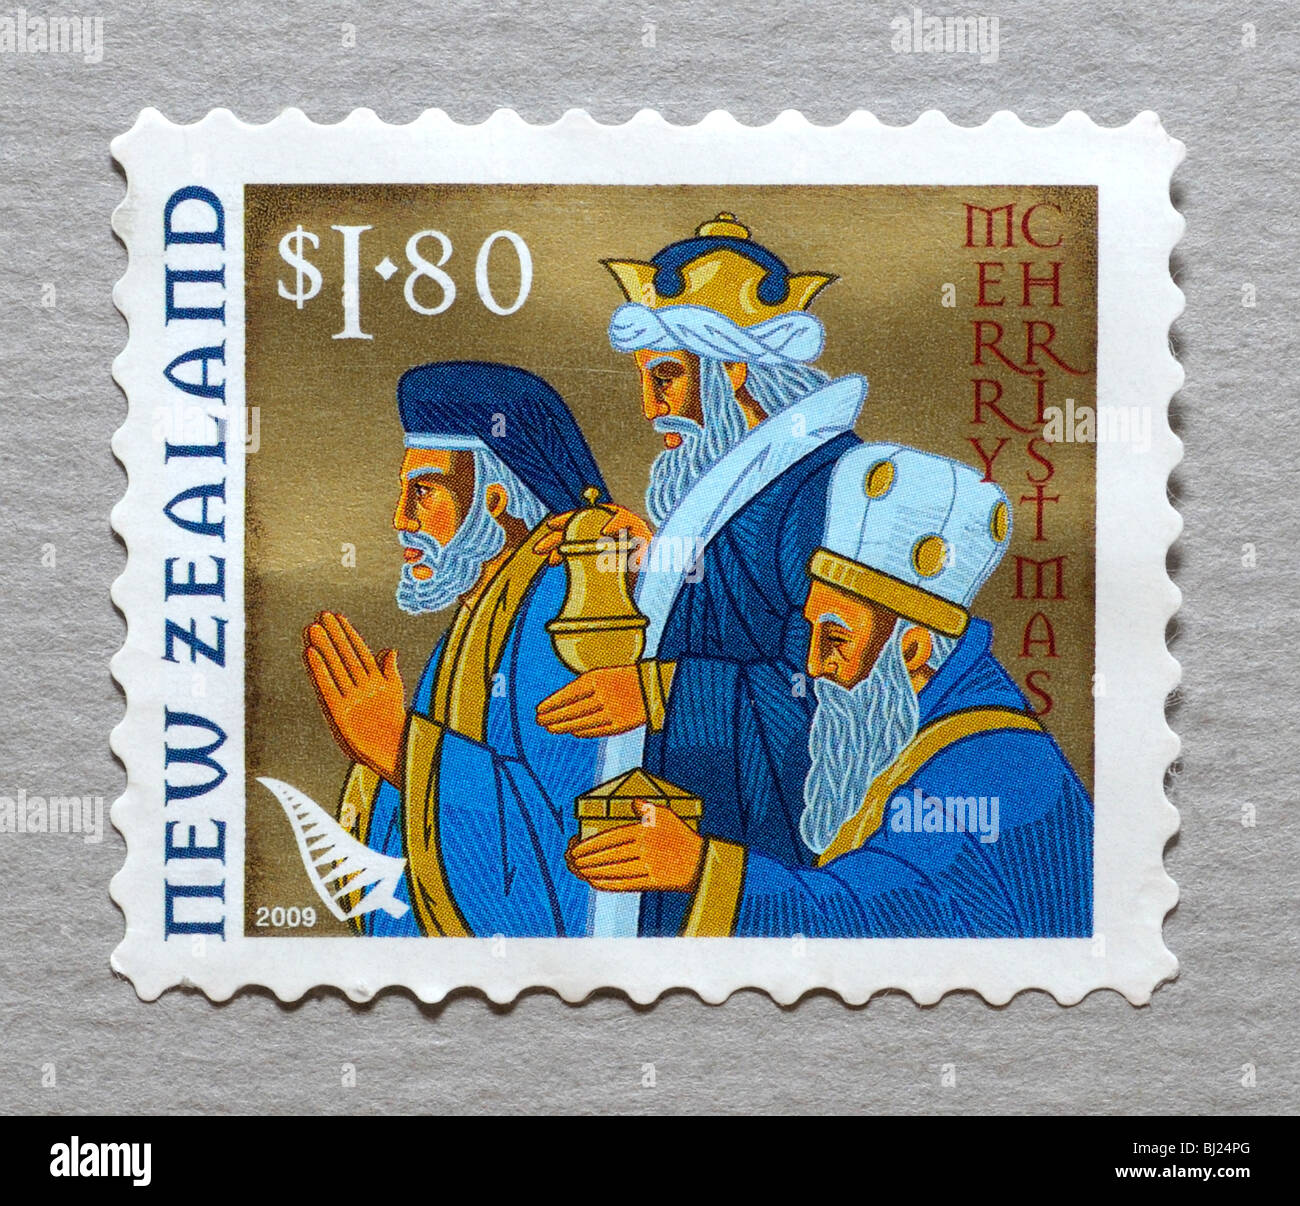 New Zealand Postage Stamp. - Stock Image